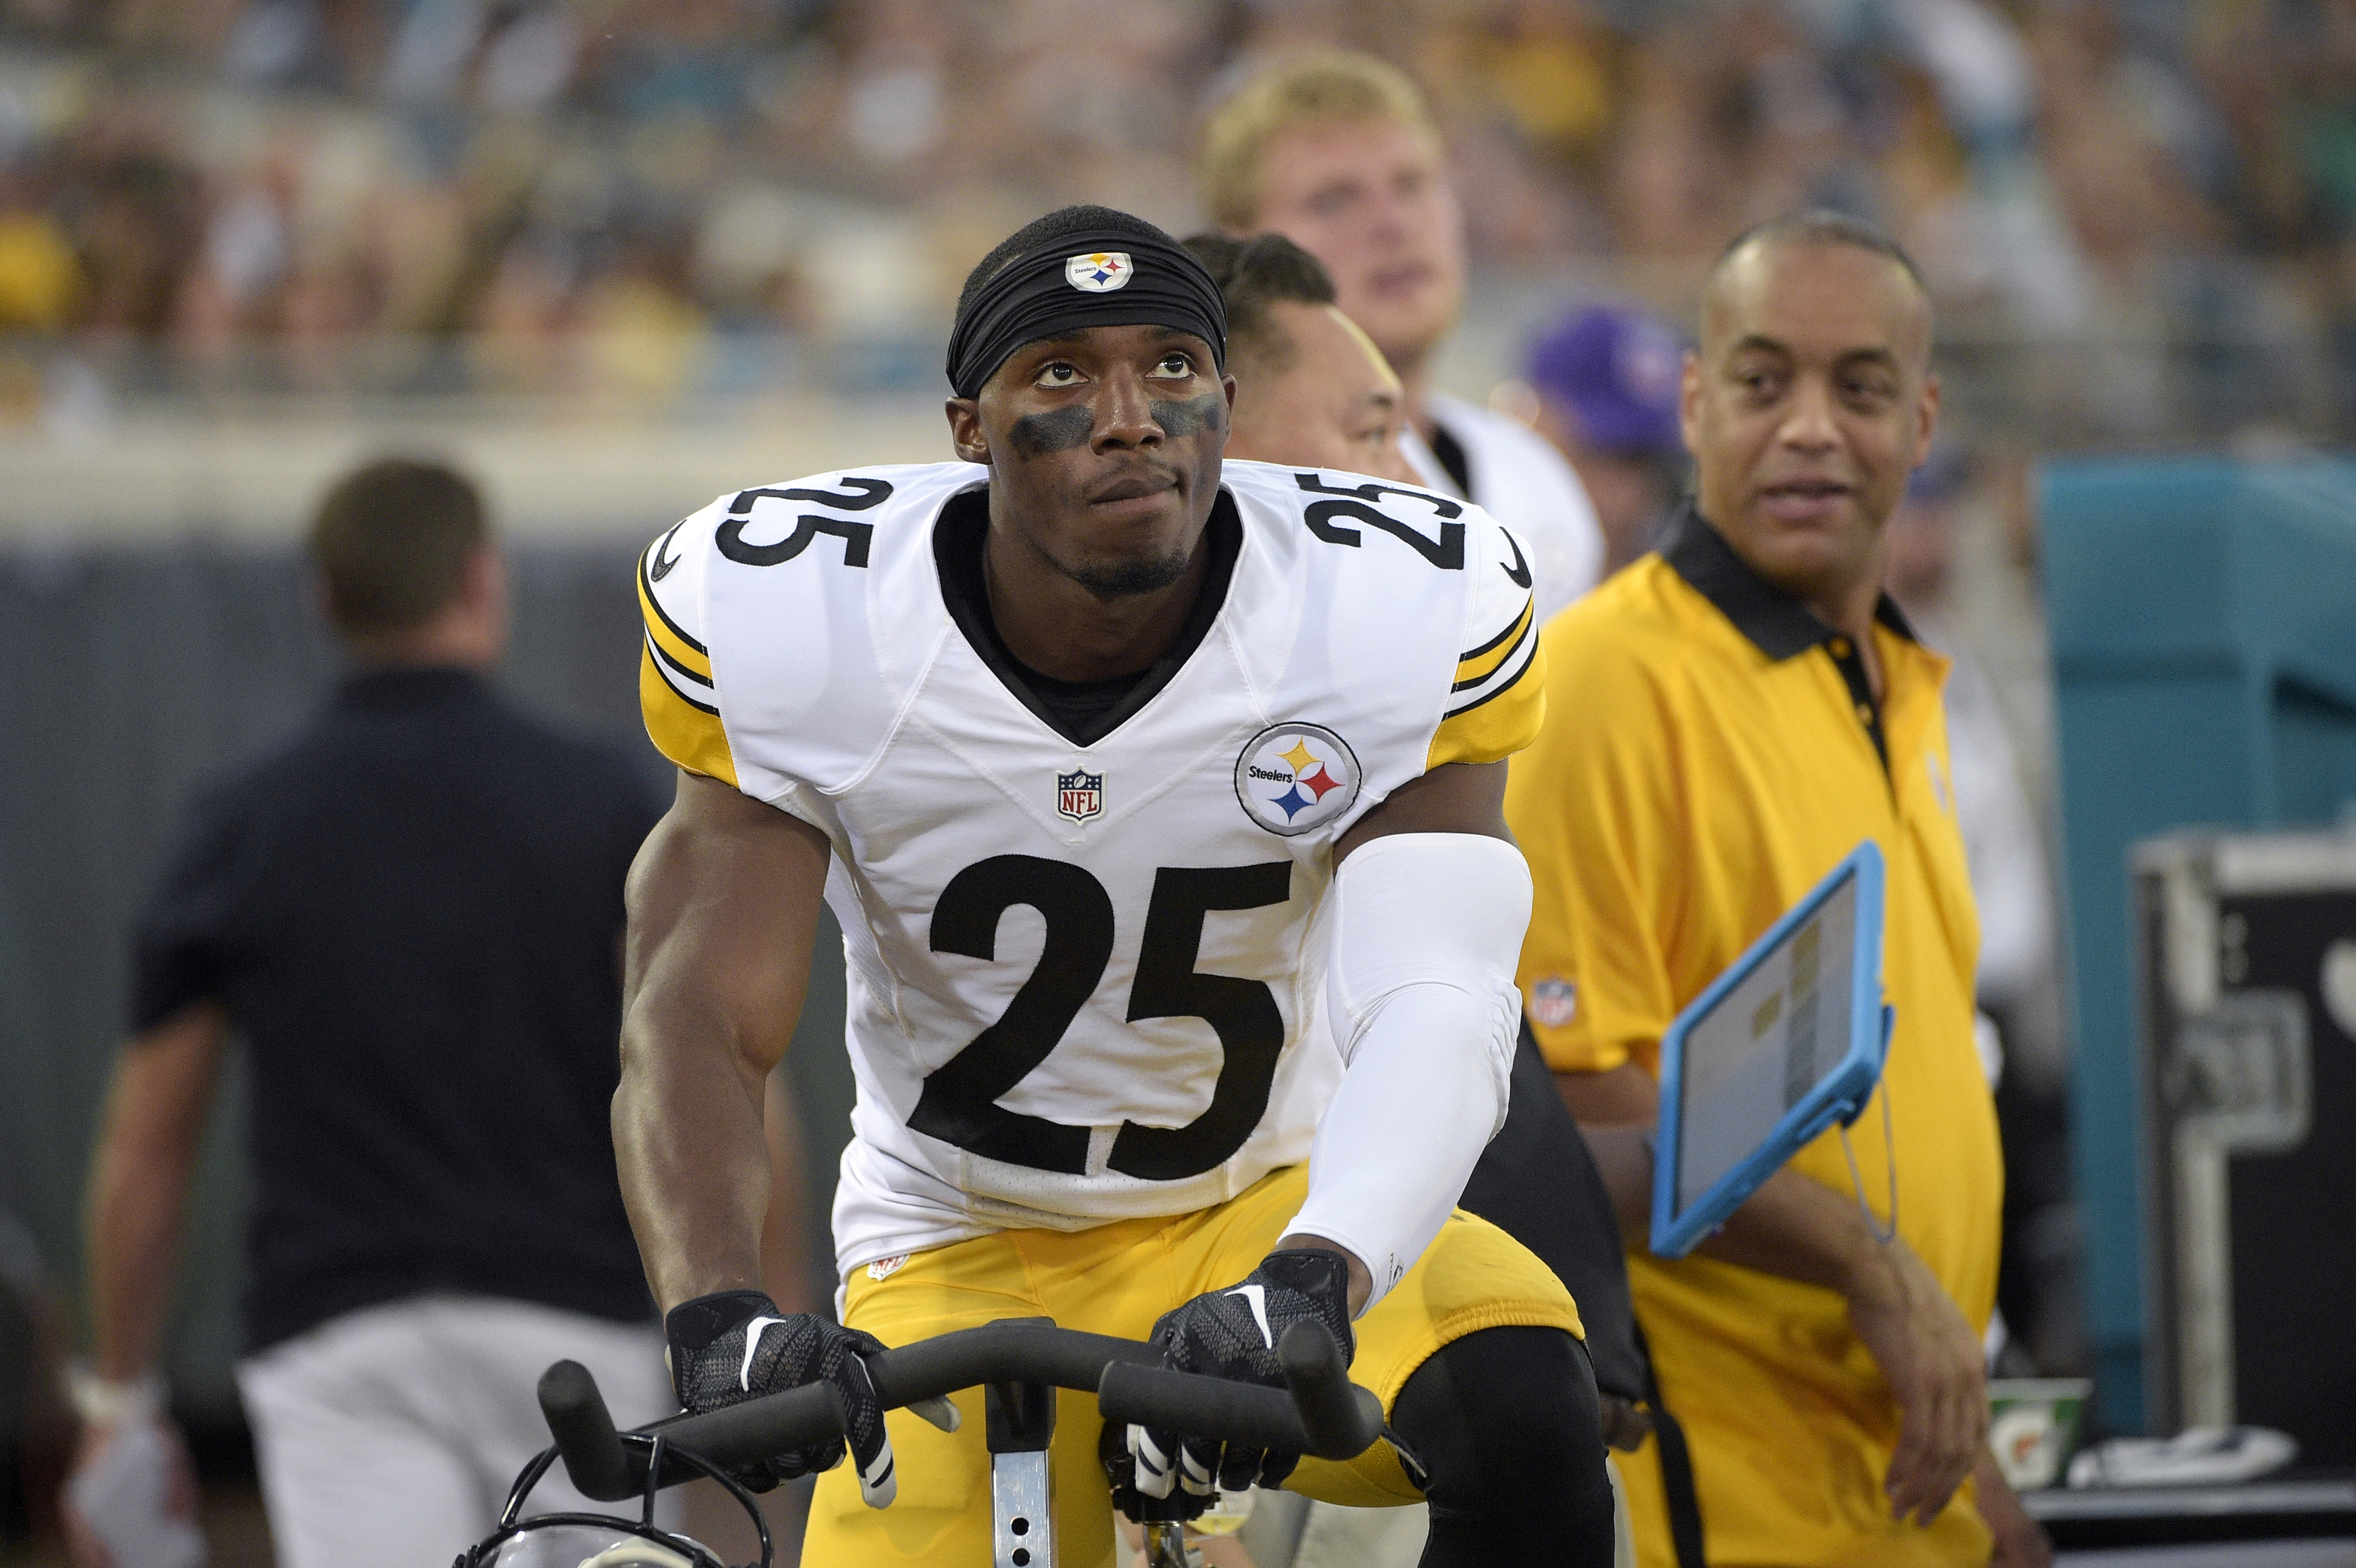 FILE - In this Aug. 14, 2015, file photo, Pittsburgh Steelers defensive back Brandon Boykin (25) works on a stationary bicycle behind the bench during the first half of an NFL preseason football game against the Jacksonville Jaguars in Jacksonville, Fla.